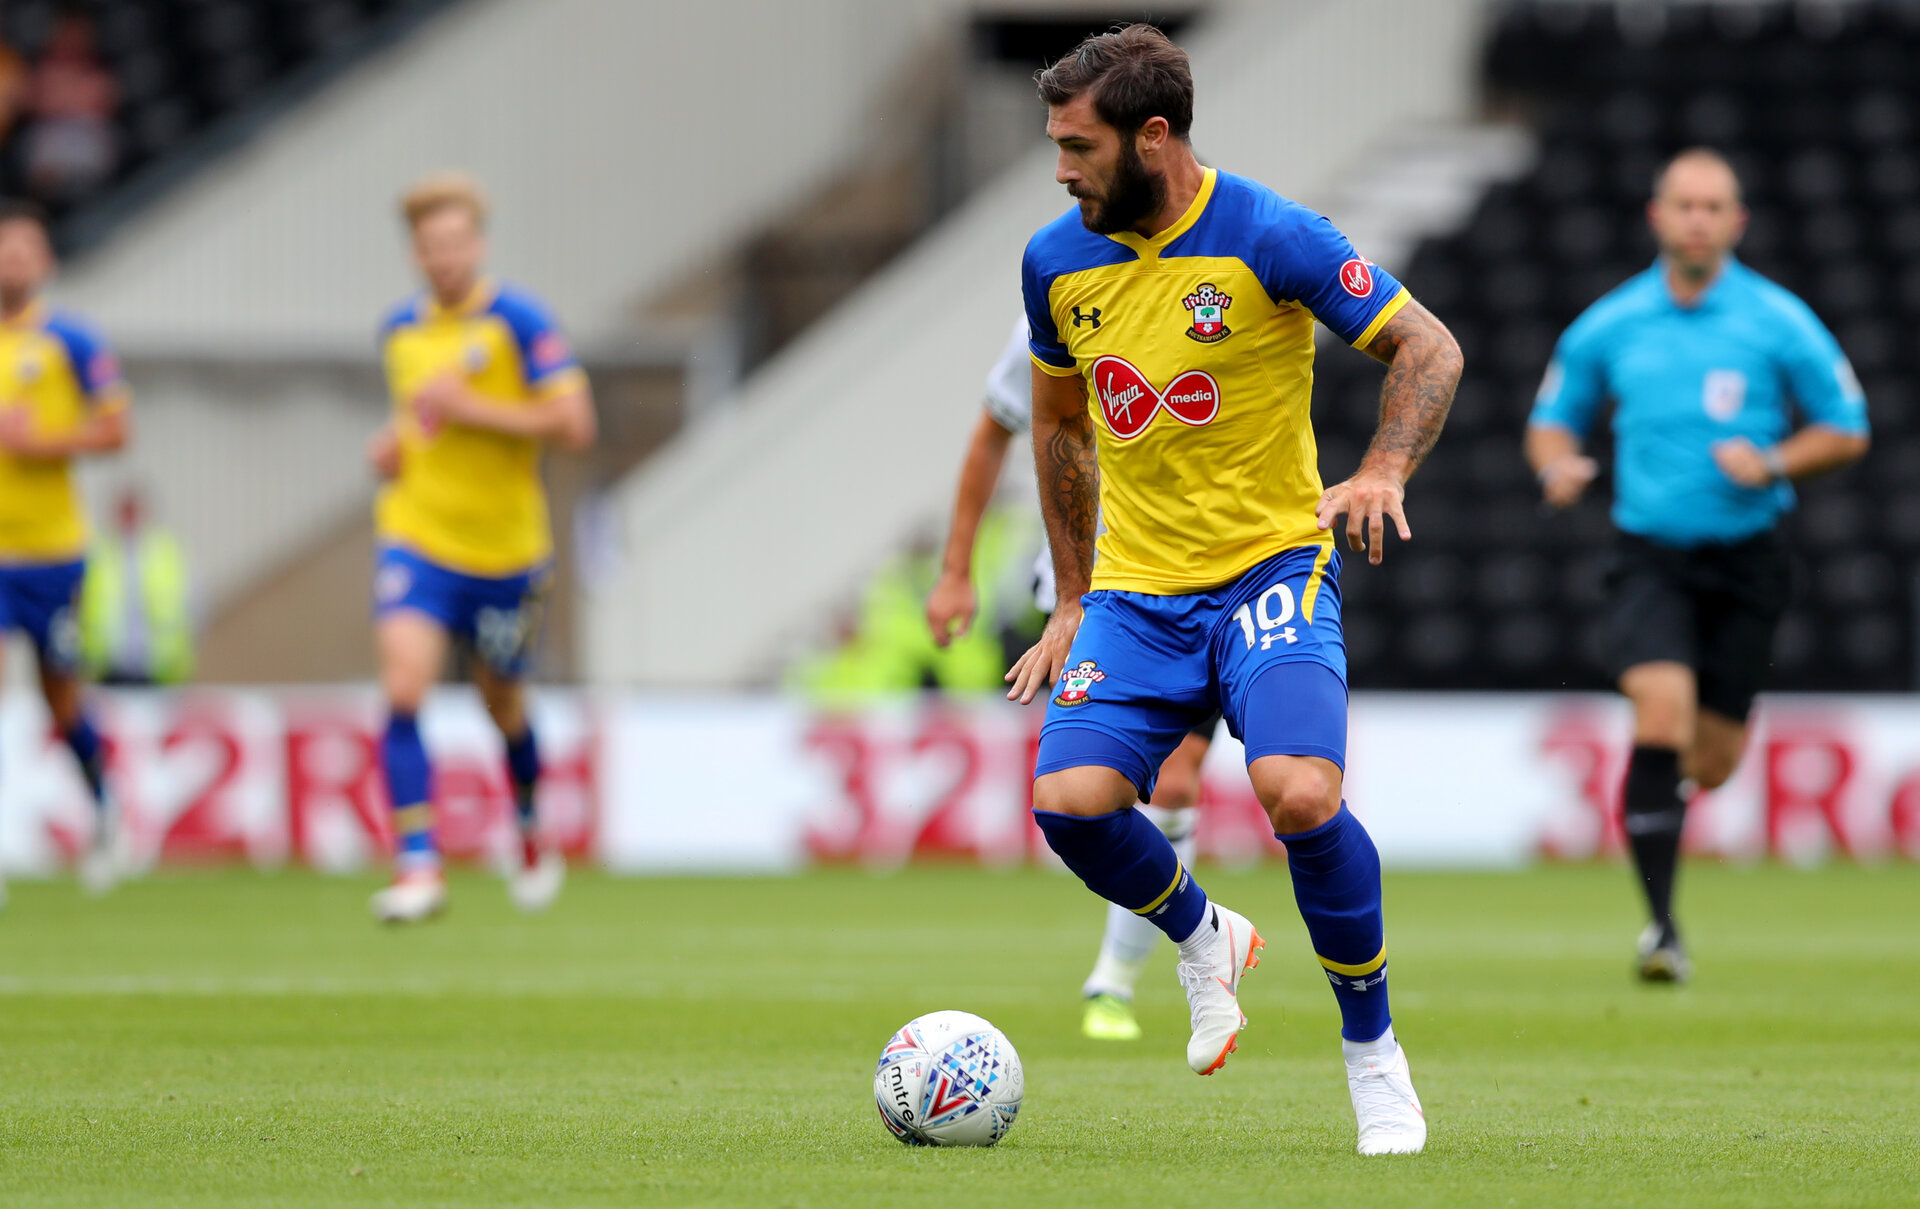 DERBY, ENGLAND - JULY 21: Charlie Austin of Southampton during the pre-season friendly match between Derby County and Southampton at Pride Park on July 21, 2018 in Derby, England. (Photo by Matt Watson/Southampton FC via Getty Images)